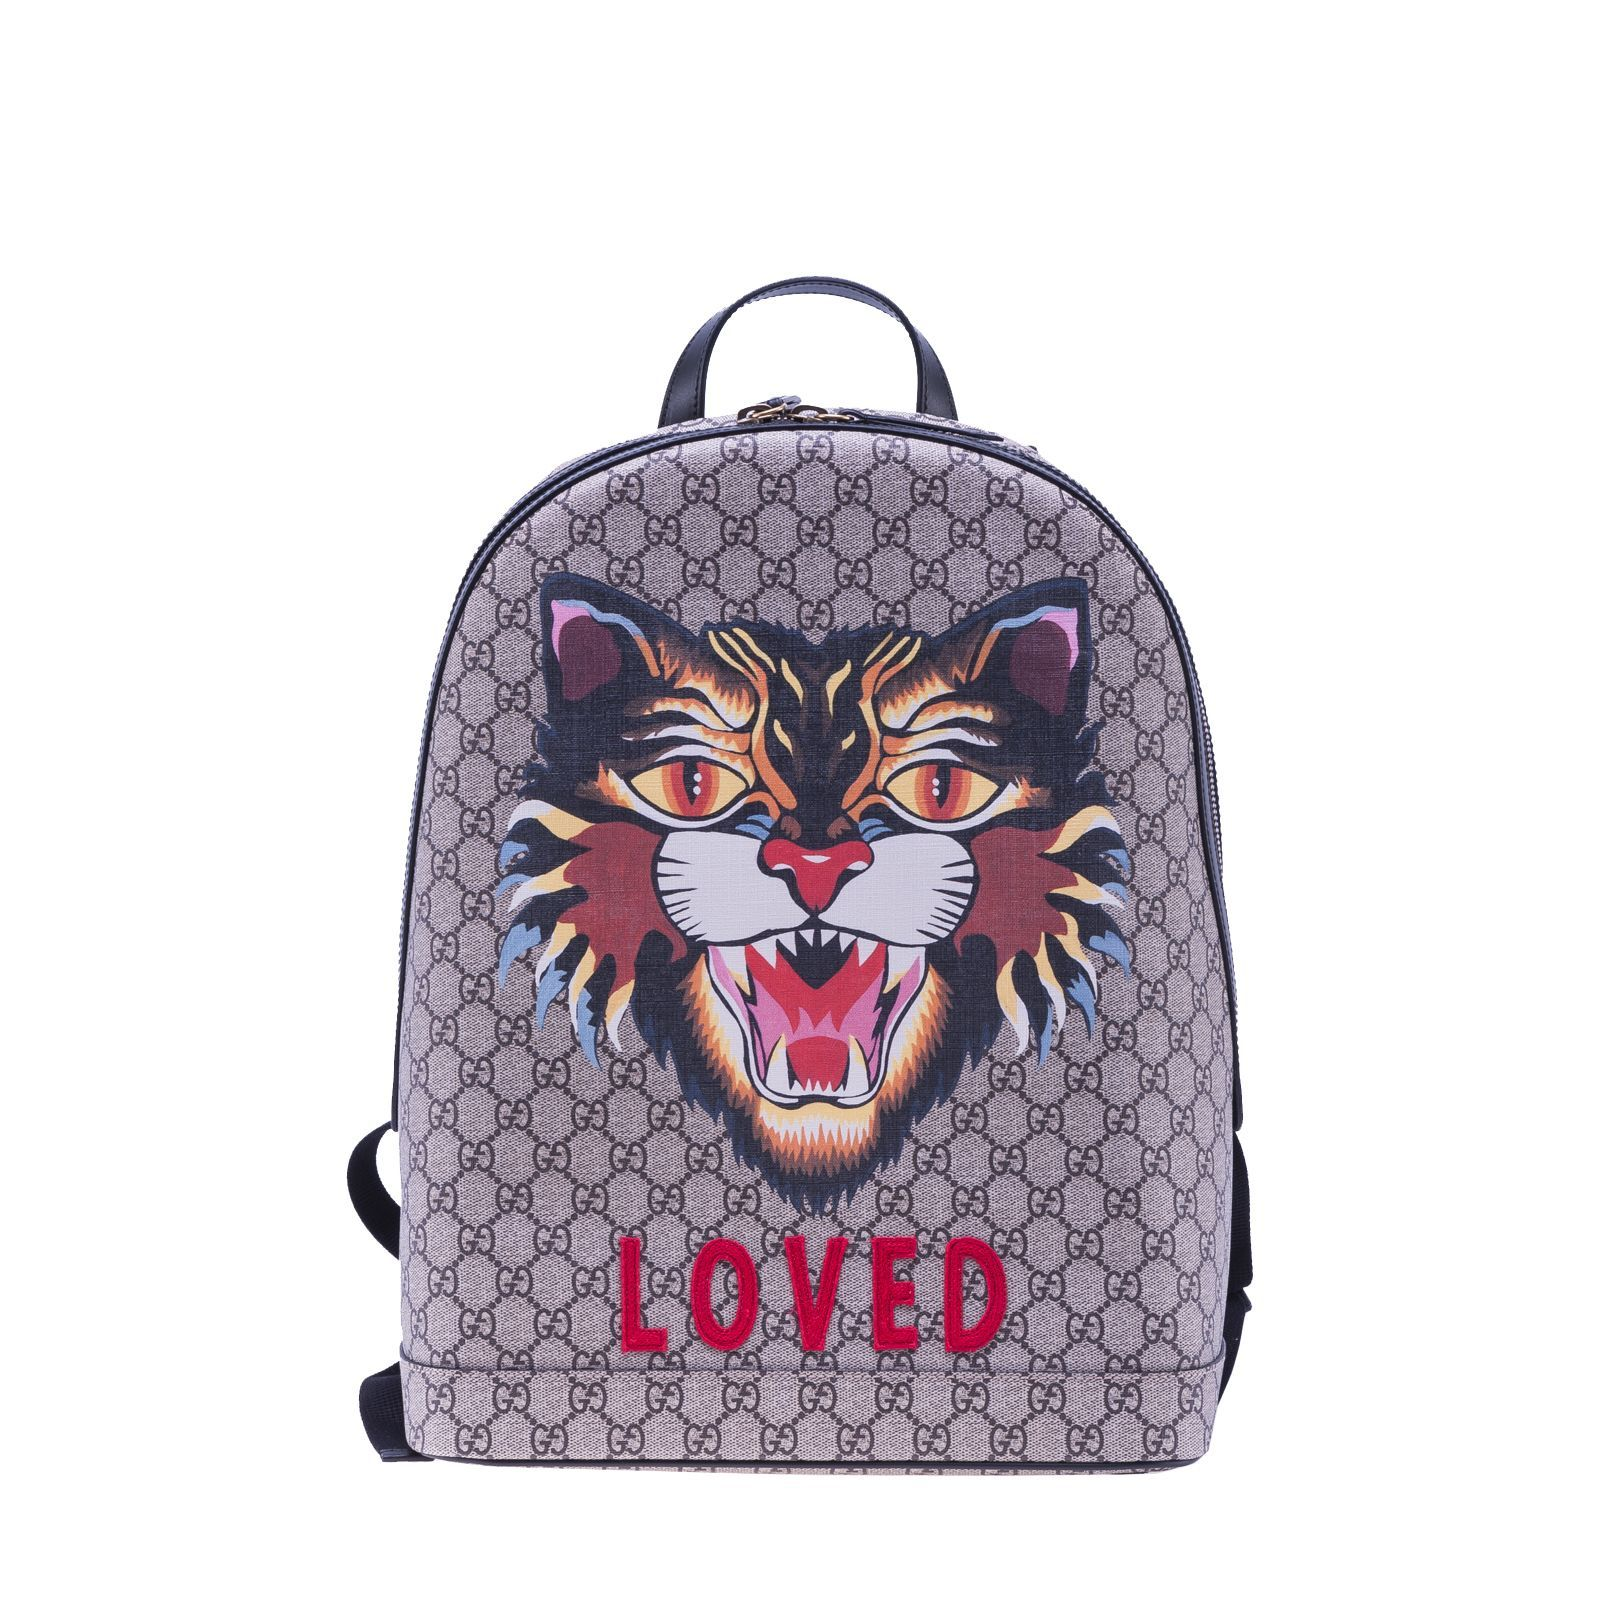 91397c82eade87 GUCCI GUCCI ANGRY CAT PRINT GG BACKPACK. #gucci #bags #leather #canvas  #nylon #backpacks #